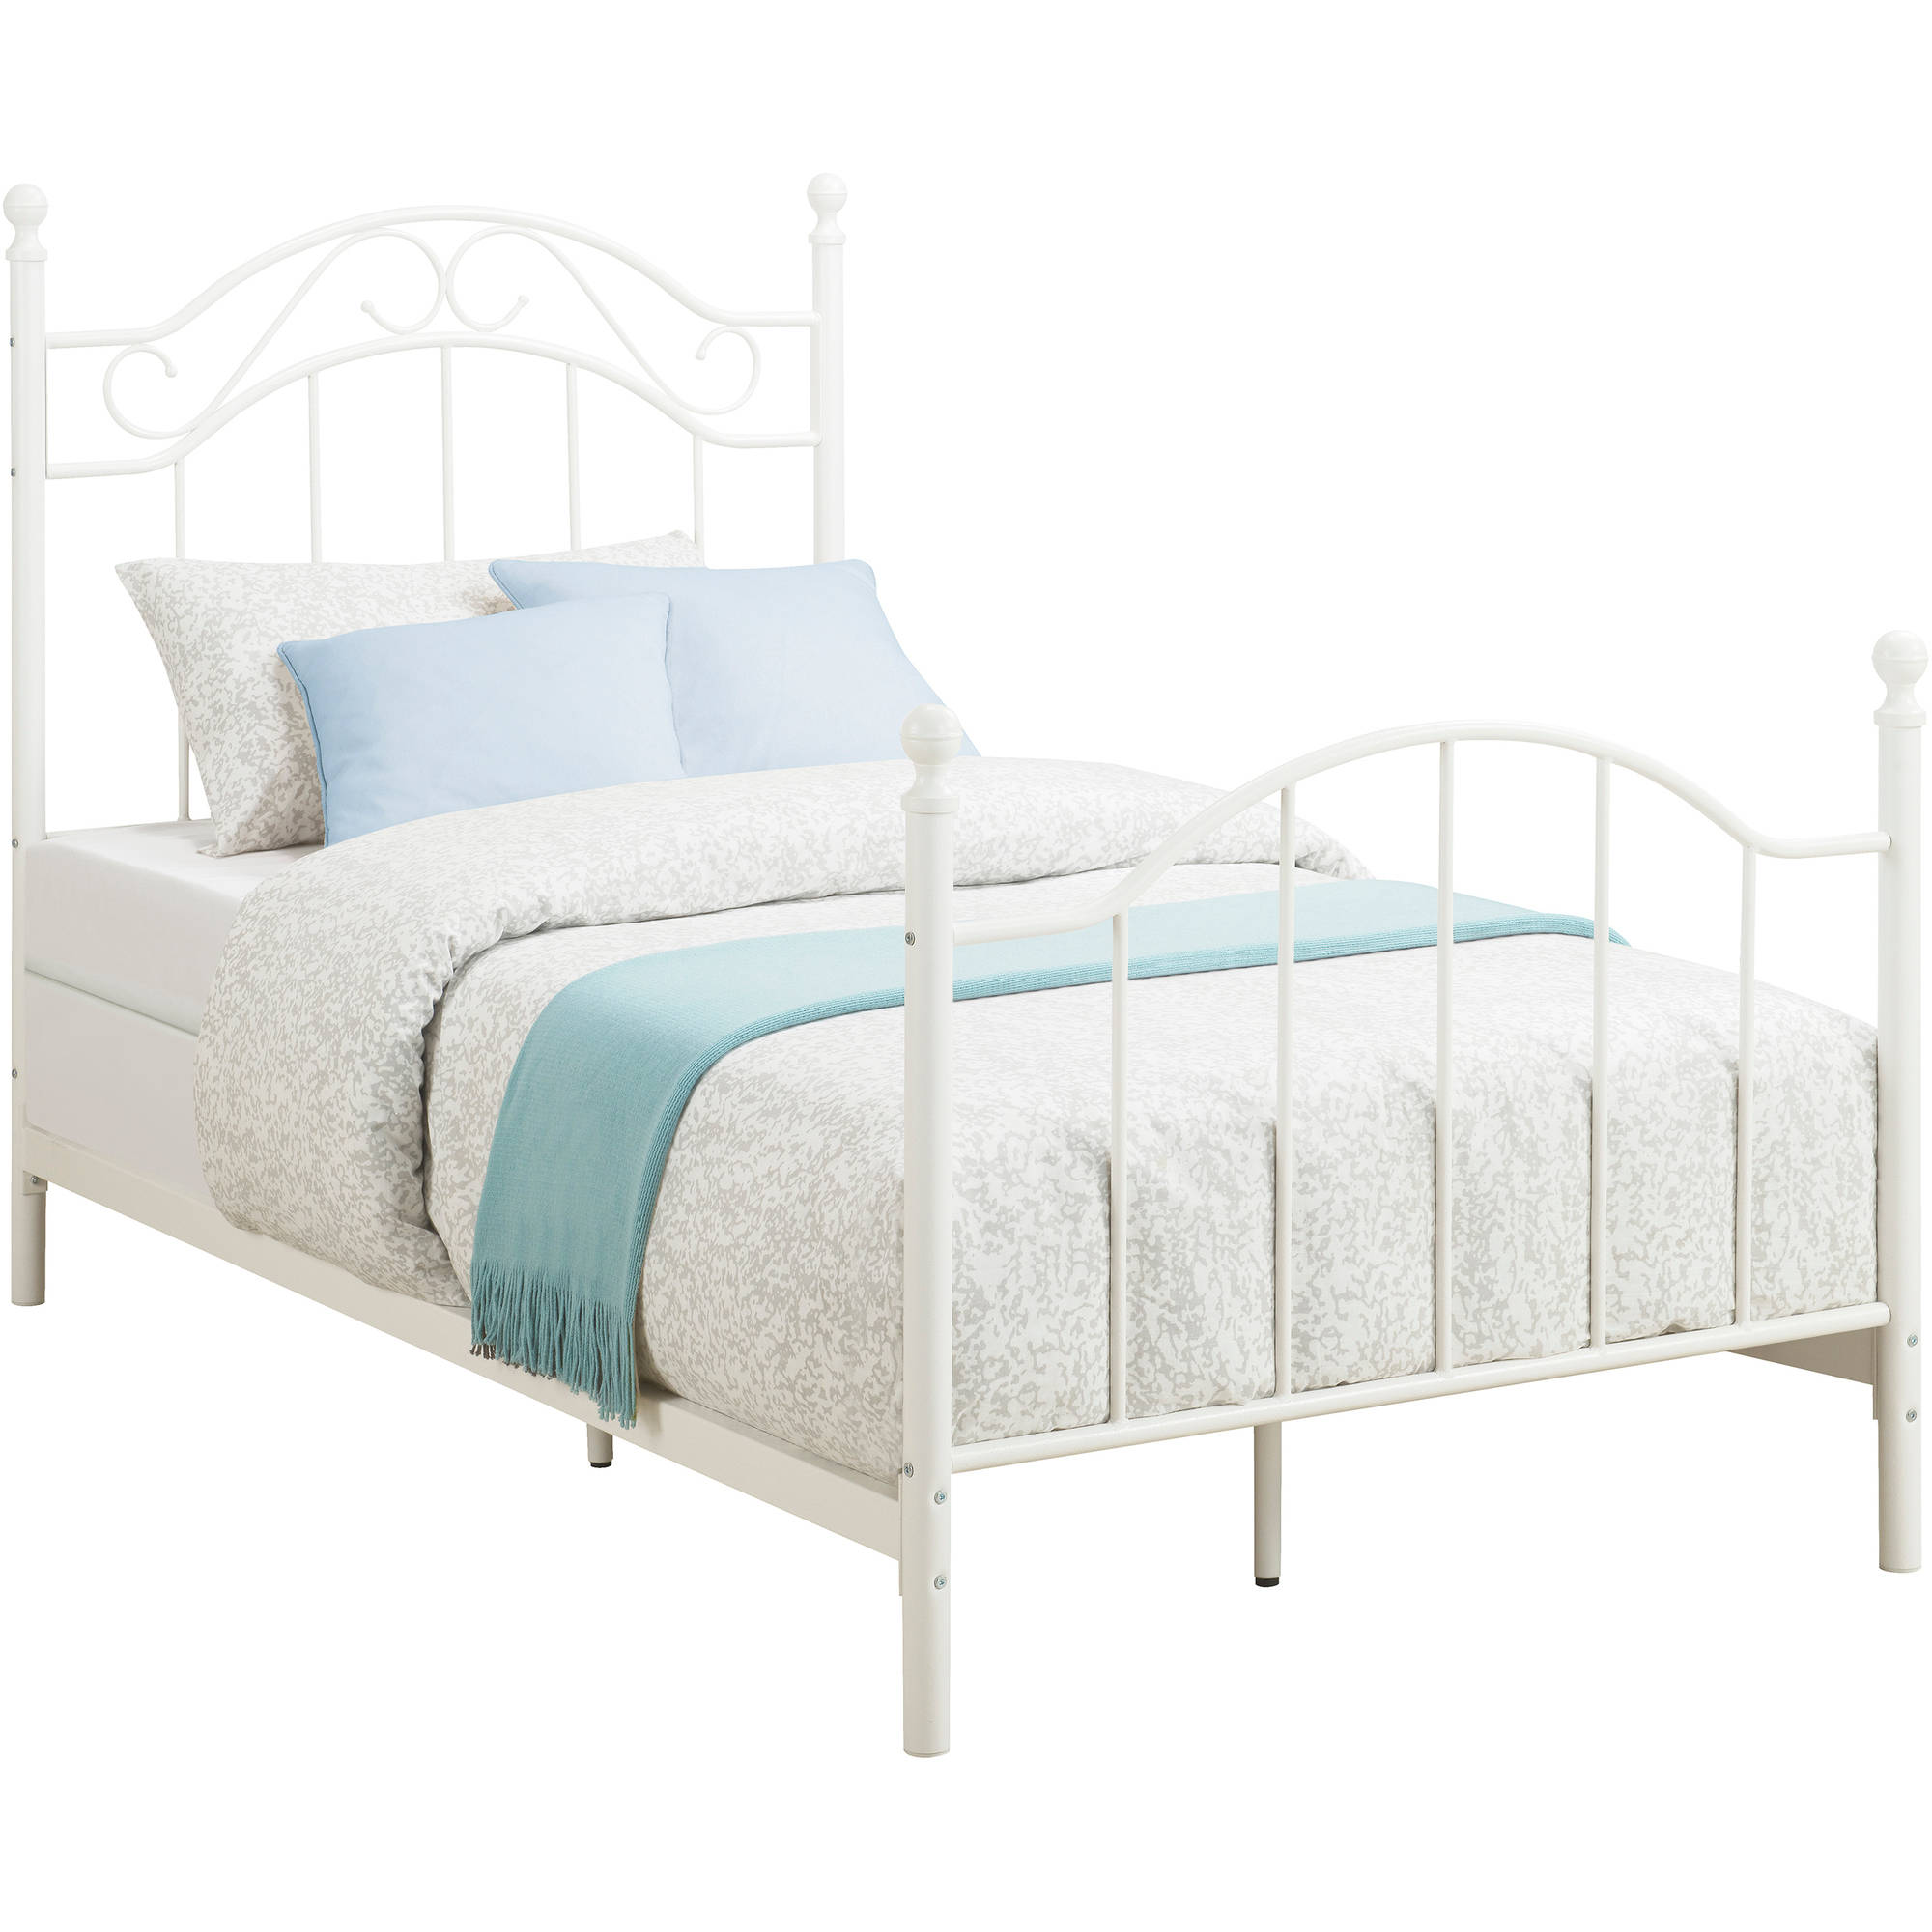 twin metal bed daybeds frame footboard headboard girls bedroom white furniture ebay. Black Bedroom Furniture Sets. Home Design Ideas